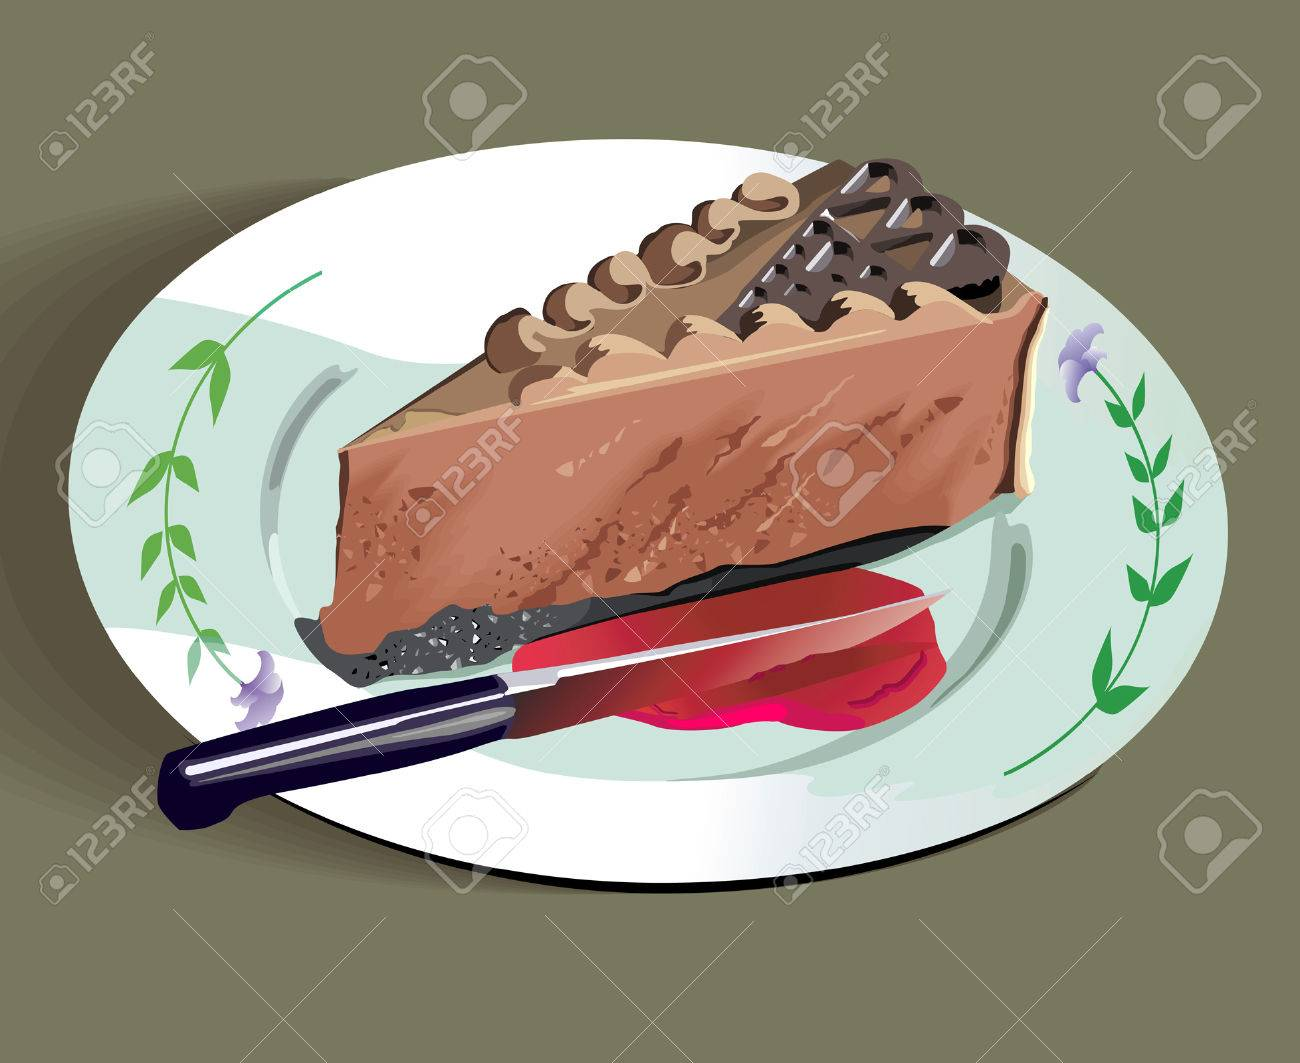 A Slice of cake and knife on plate Stock Vector - 1695039 & A Slice Of Cake And Knife On Plate Royalty Free Cliparts Vectors ...